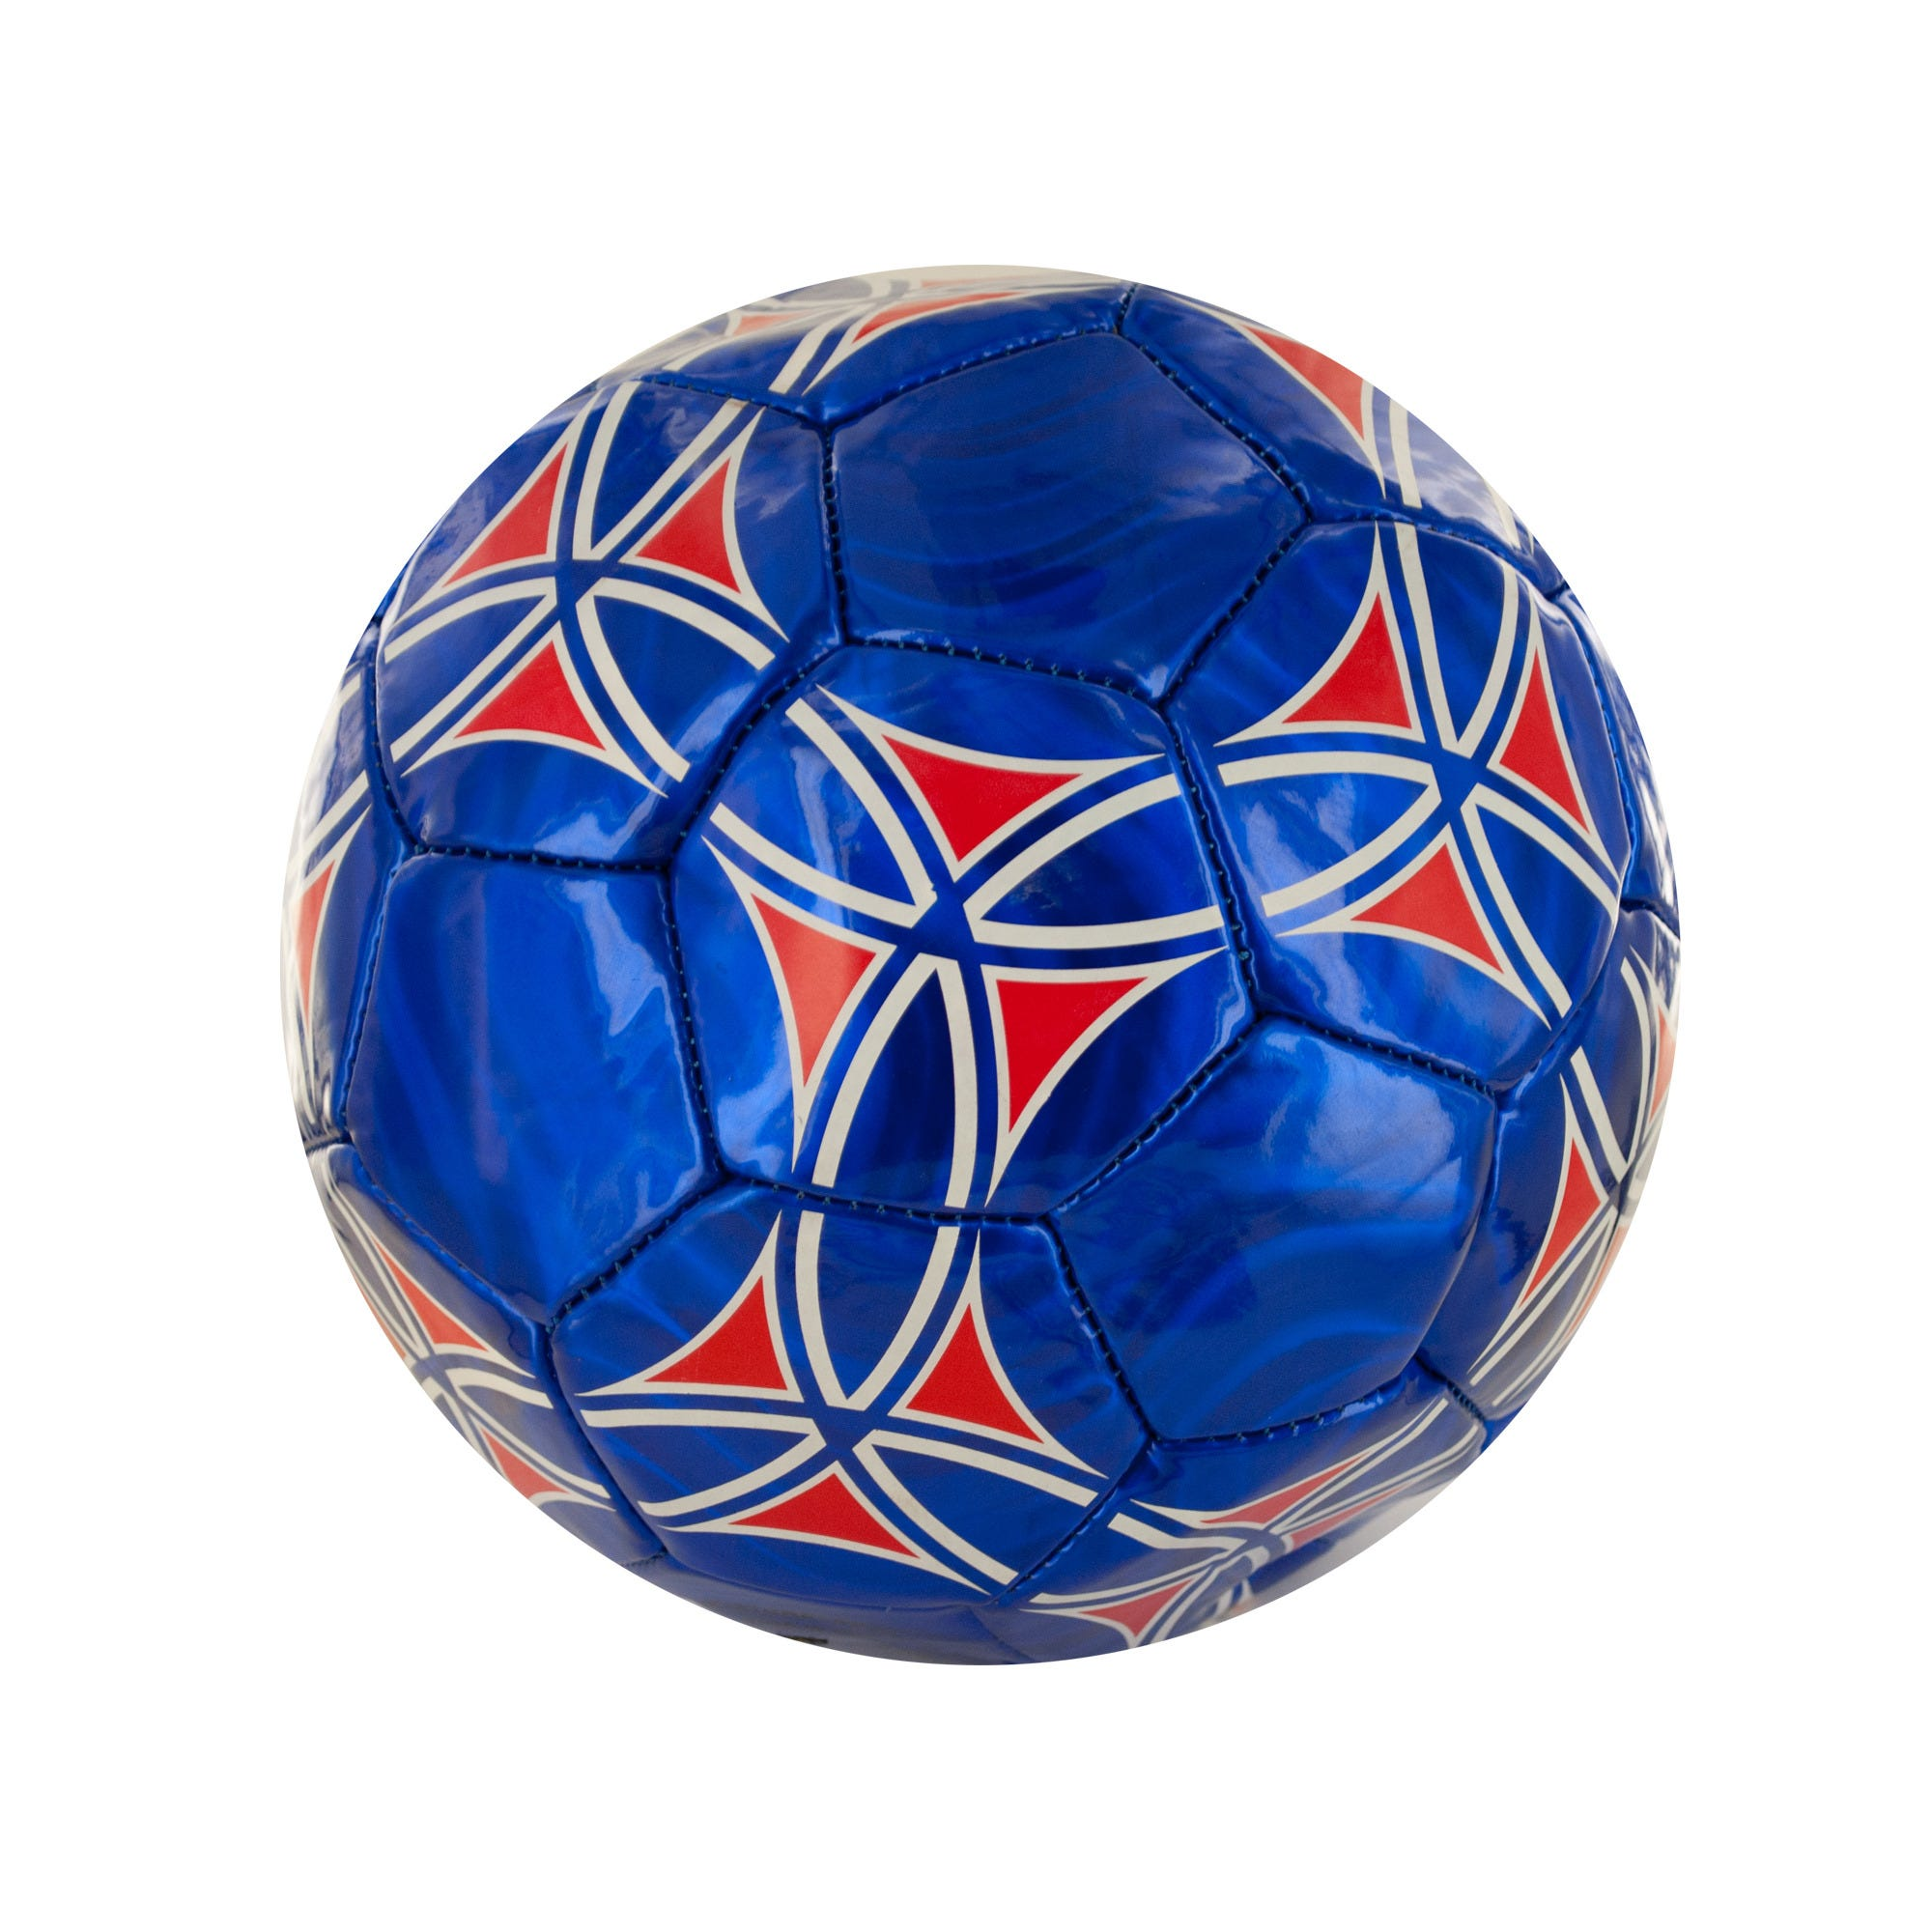 Size 5 Laser Soccer Ball- Qty 4